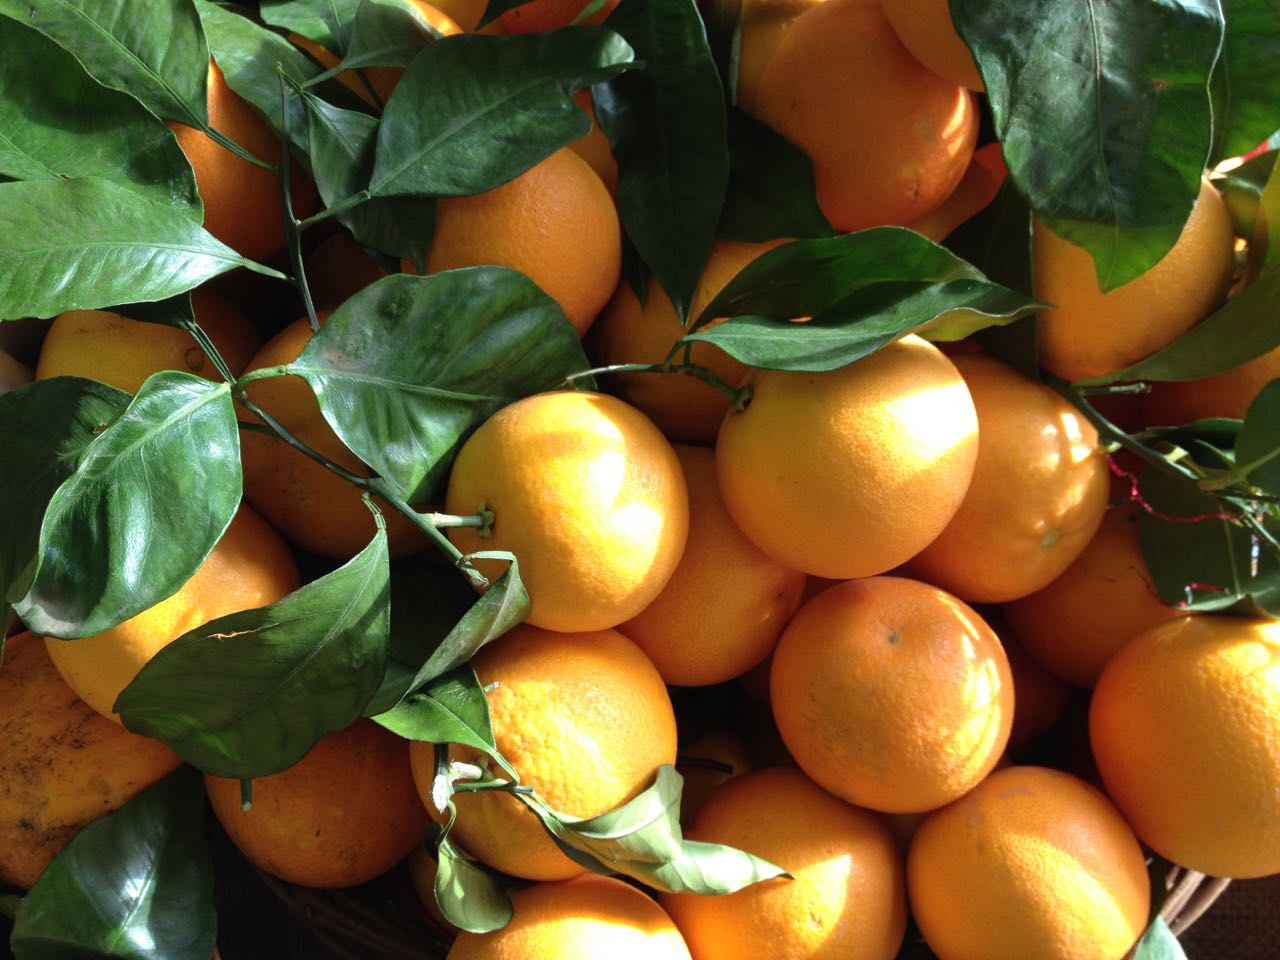 Sicilian Early Season Tarocco Oranges    Photo ©Evie Saffron Strands    GOOD TO KNOW:   As we race towards Christmas, a word about opening hours.  Our Arch at Spa Terminus will be open: 21, 22 and 23 December 08.00-at least 13.00   Please get in touch if you would like to pre-order for collection on any of these days. We can be contacted by email on:  hello@puntarelle.co.uk   Throughout December we will be selling our seasonal Water Kefirs as usual. Going into winter, you can expect flavours that match this festive time with spices, citrus and dried fruit notes to the fore. Examples are:   Pumpkin & Orange Spice Water Kefir   With notes of orange, and gingerbread, we think this seasonal Kefir catches the mood of the time of year perfectly.    Beetroot & Ginger Water Kefir   We had the idea to harness the natural sugars, earthy flavours and dramatic pigment in beetroot for this spicy Kefir and the results, we think, are very pleasing.  Like all our Water Kefirs, these unpasteurised fermented drinks bring beneficial micro-organisms, B vitamins, minerals and enzymes in a slightly sour, zingy, low sugar form. More about our range of Fermented products at:  www.londonfermentary.com